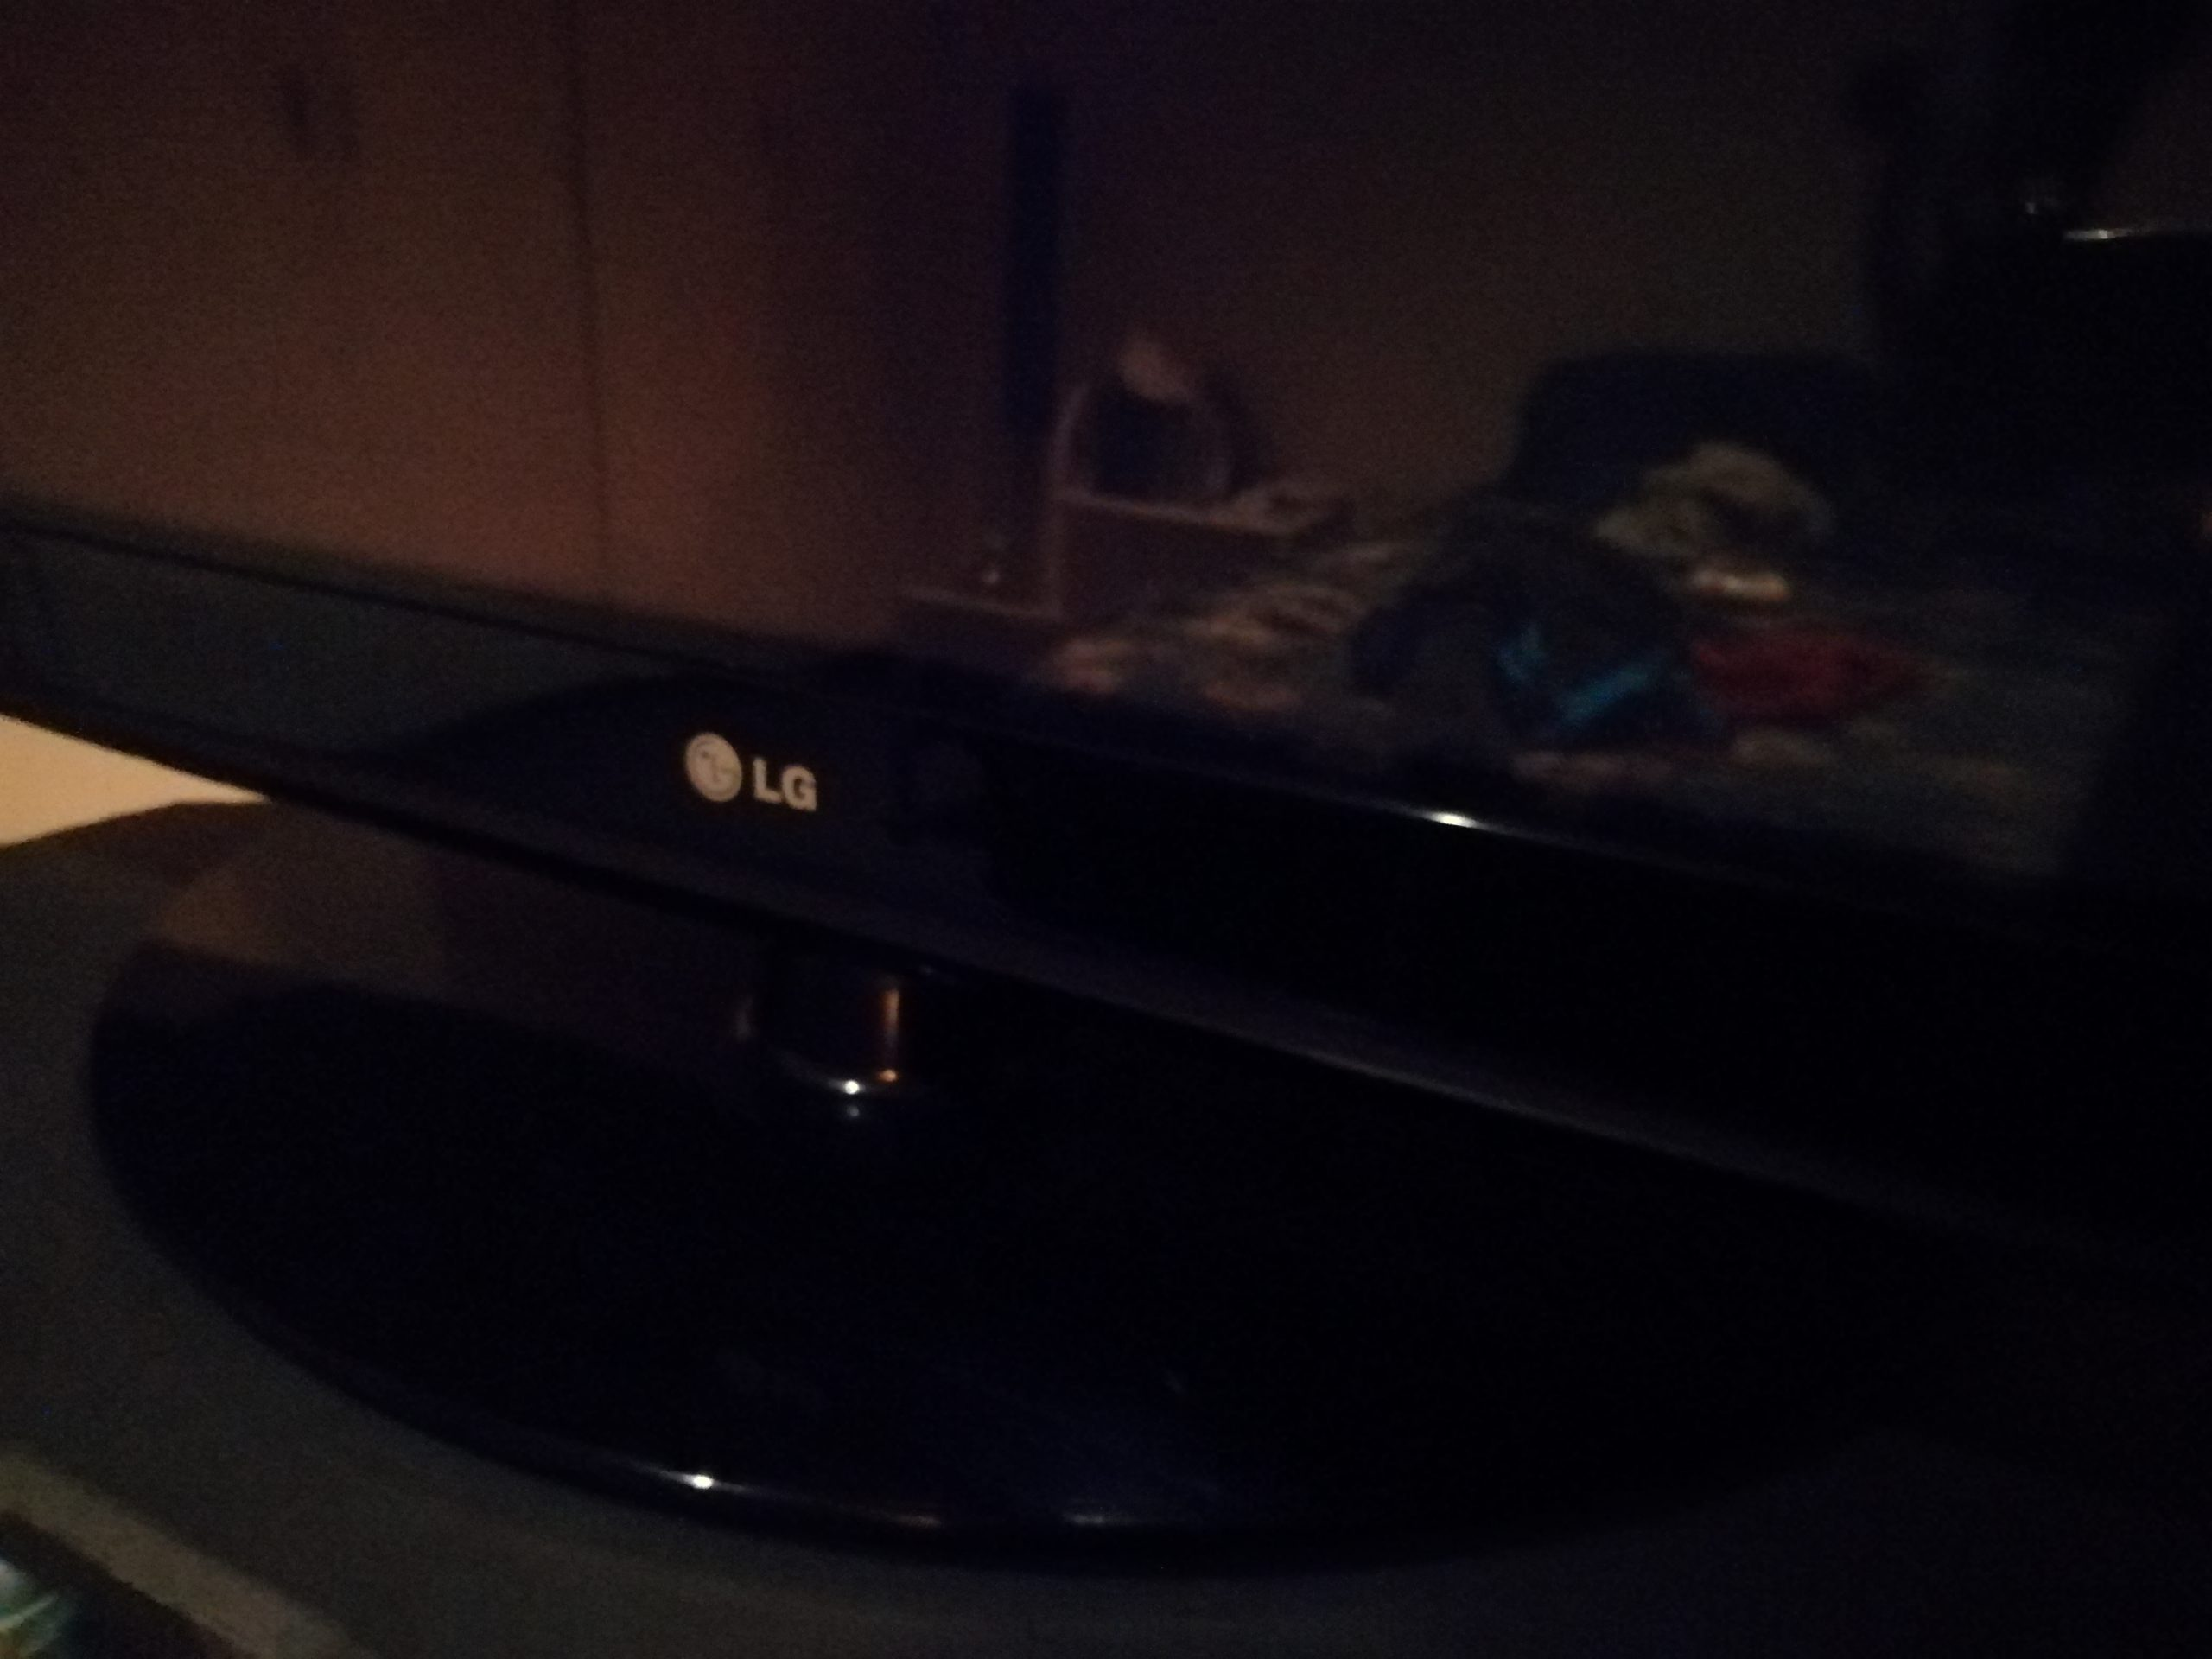 LG 42 inch TV for sale in South Africa